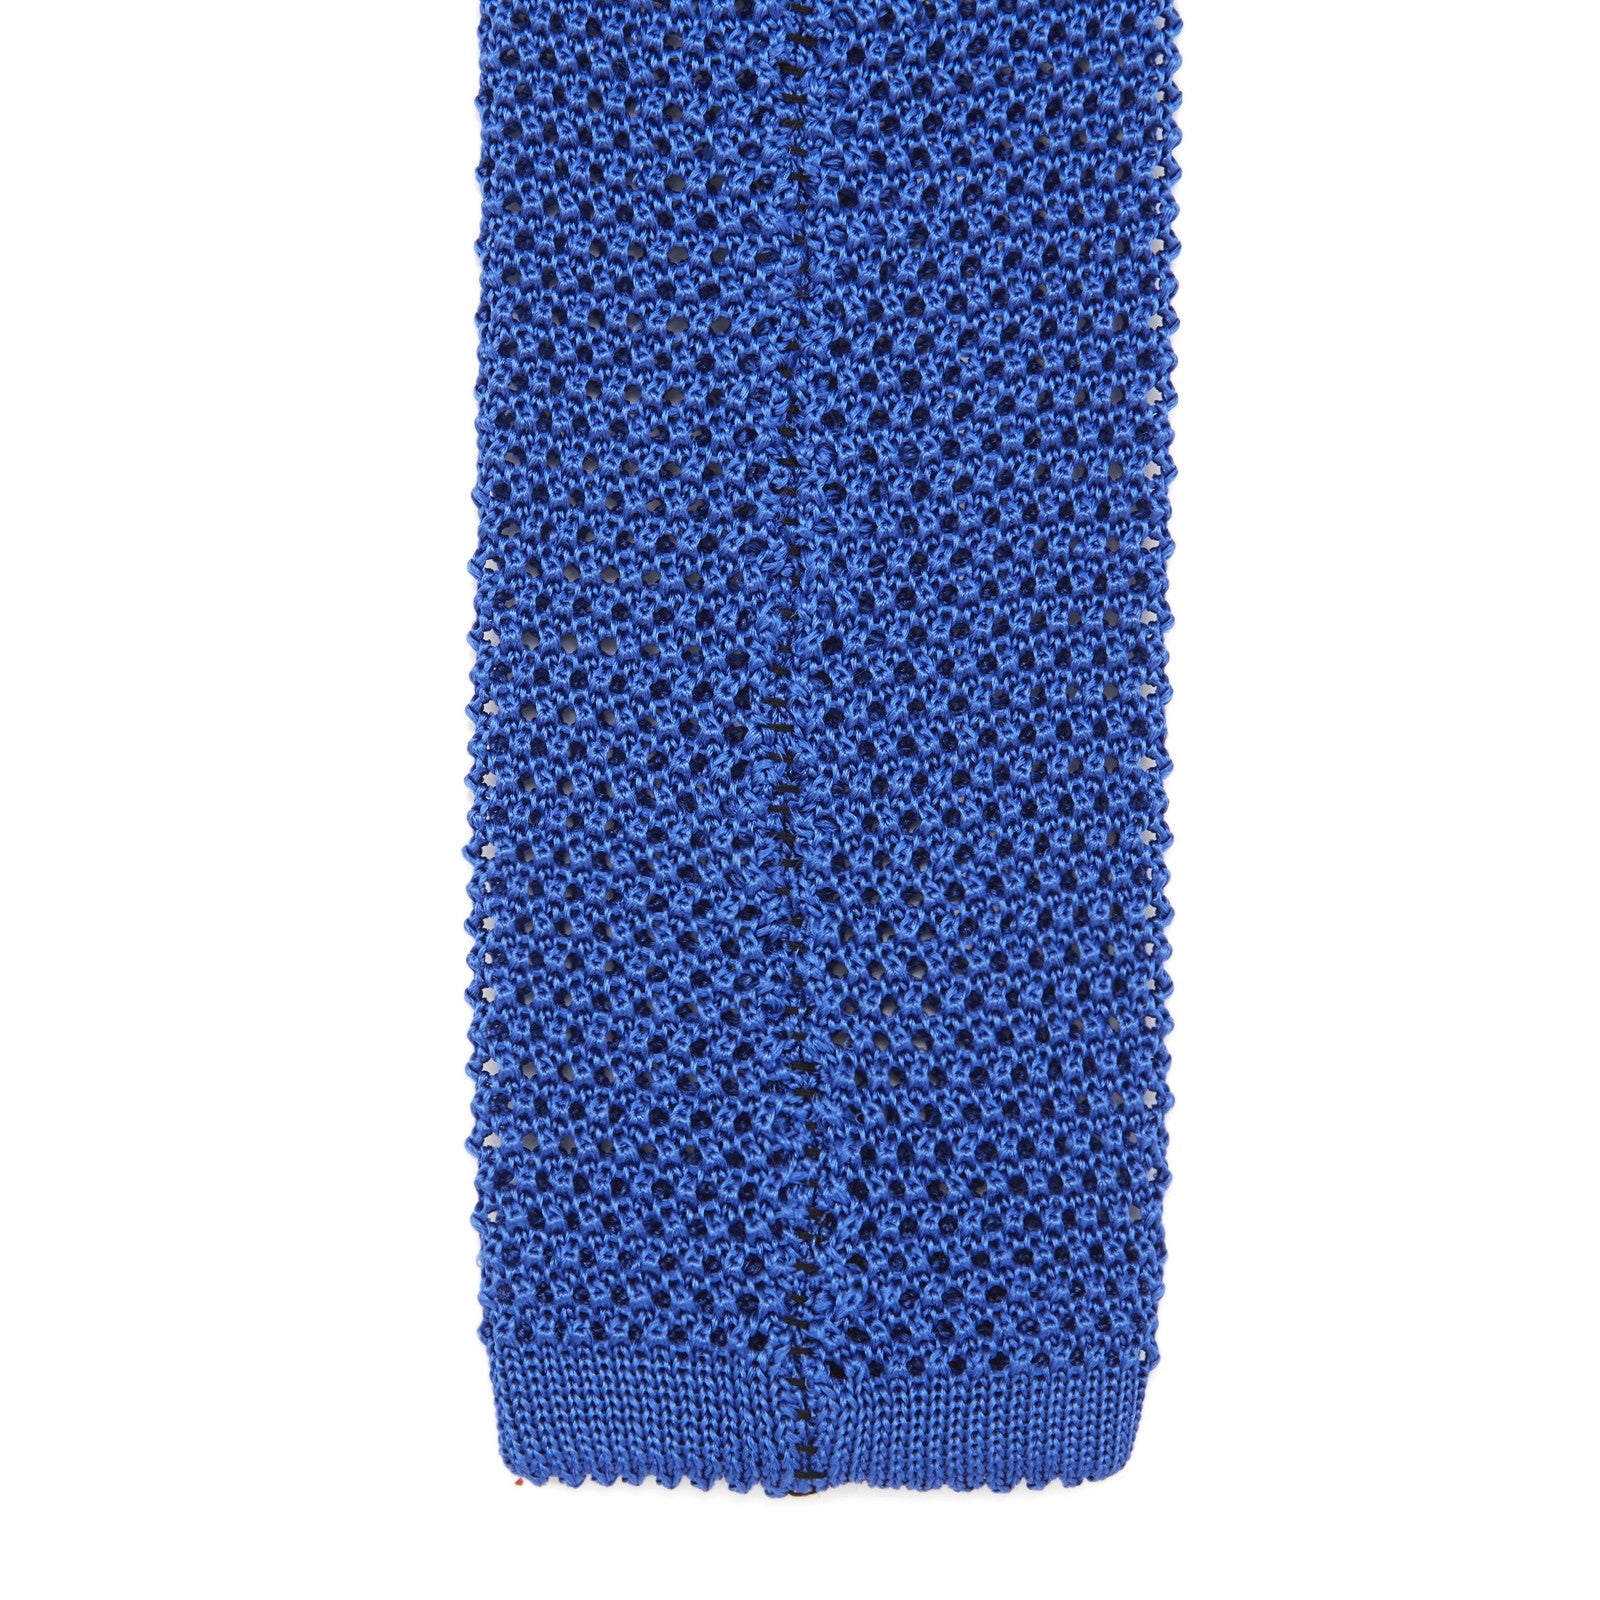 b5877f9177bb Turnbull & Asser Royal Blue Knitted Silk Tie - Crofton and Hall